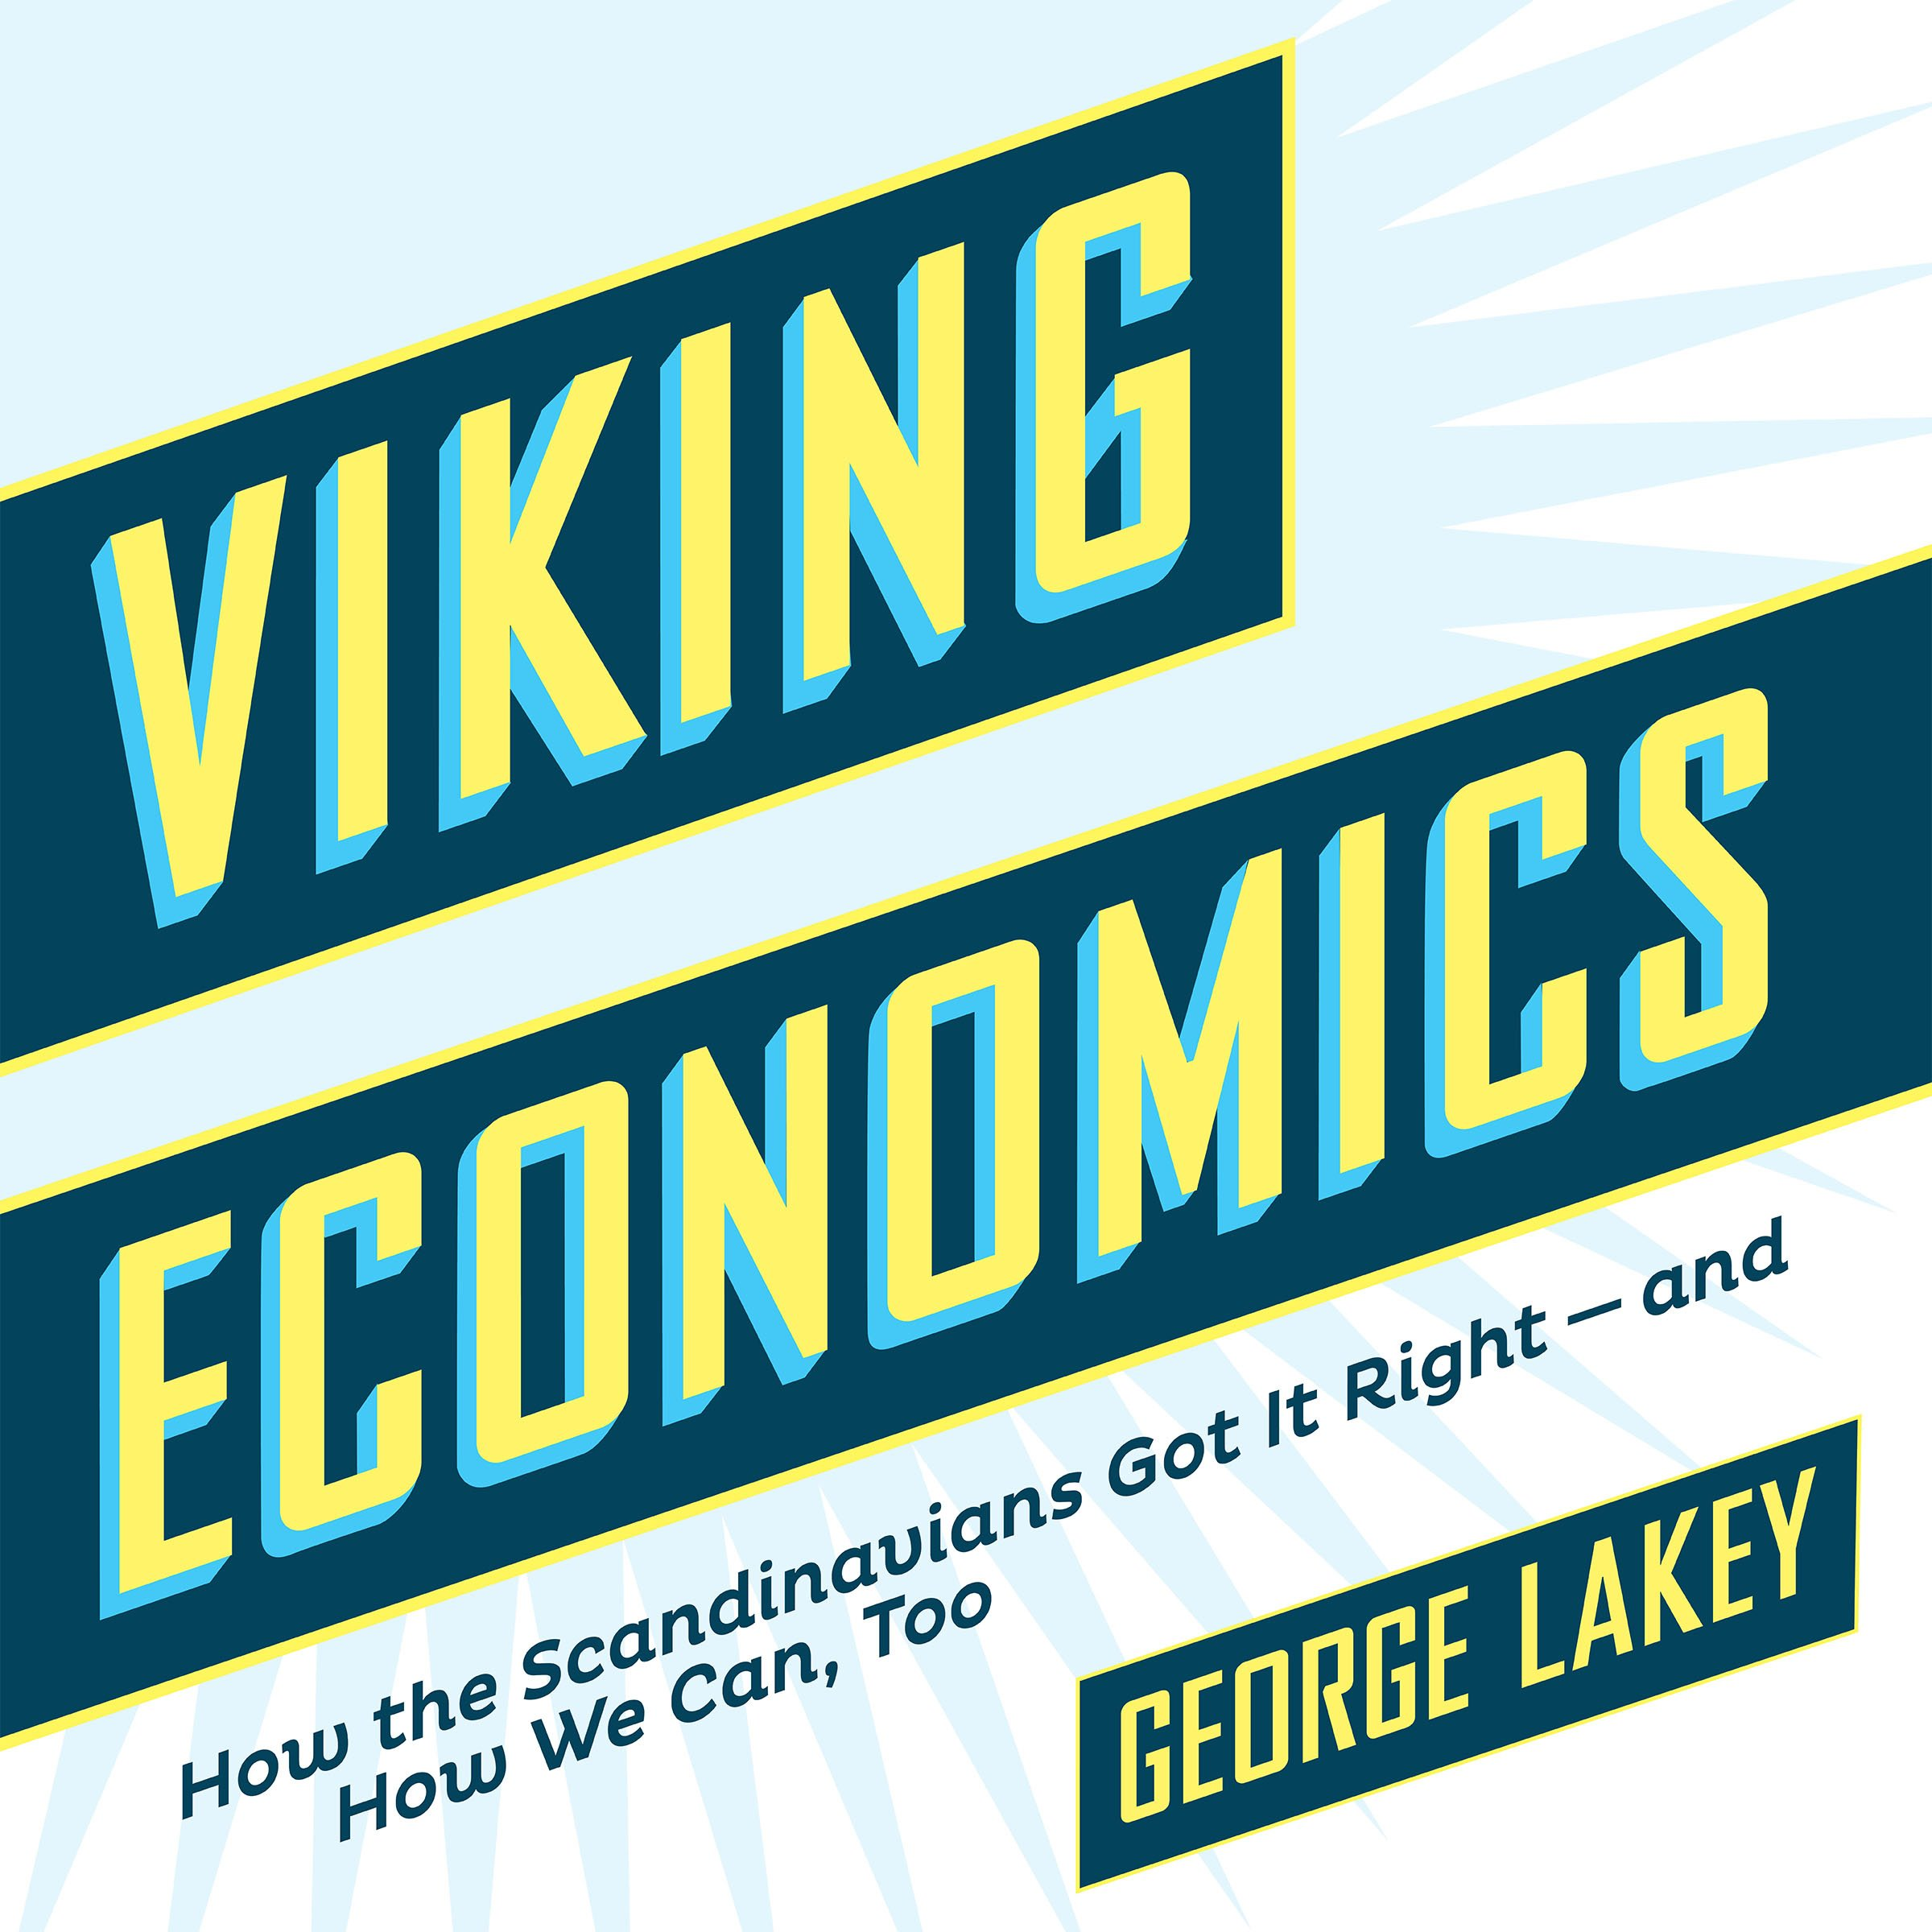 Viking Economics   How The Scandinavians Got It Right   And How We Can Too